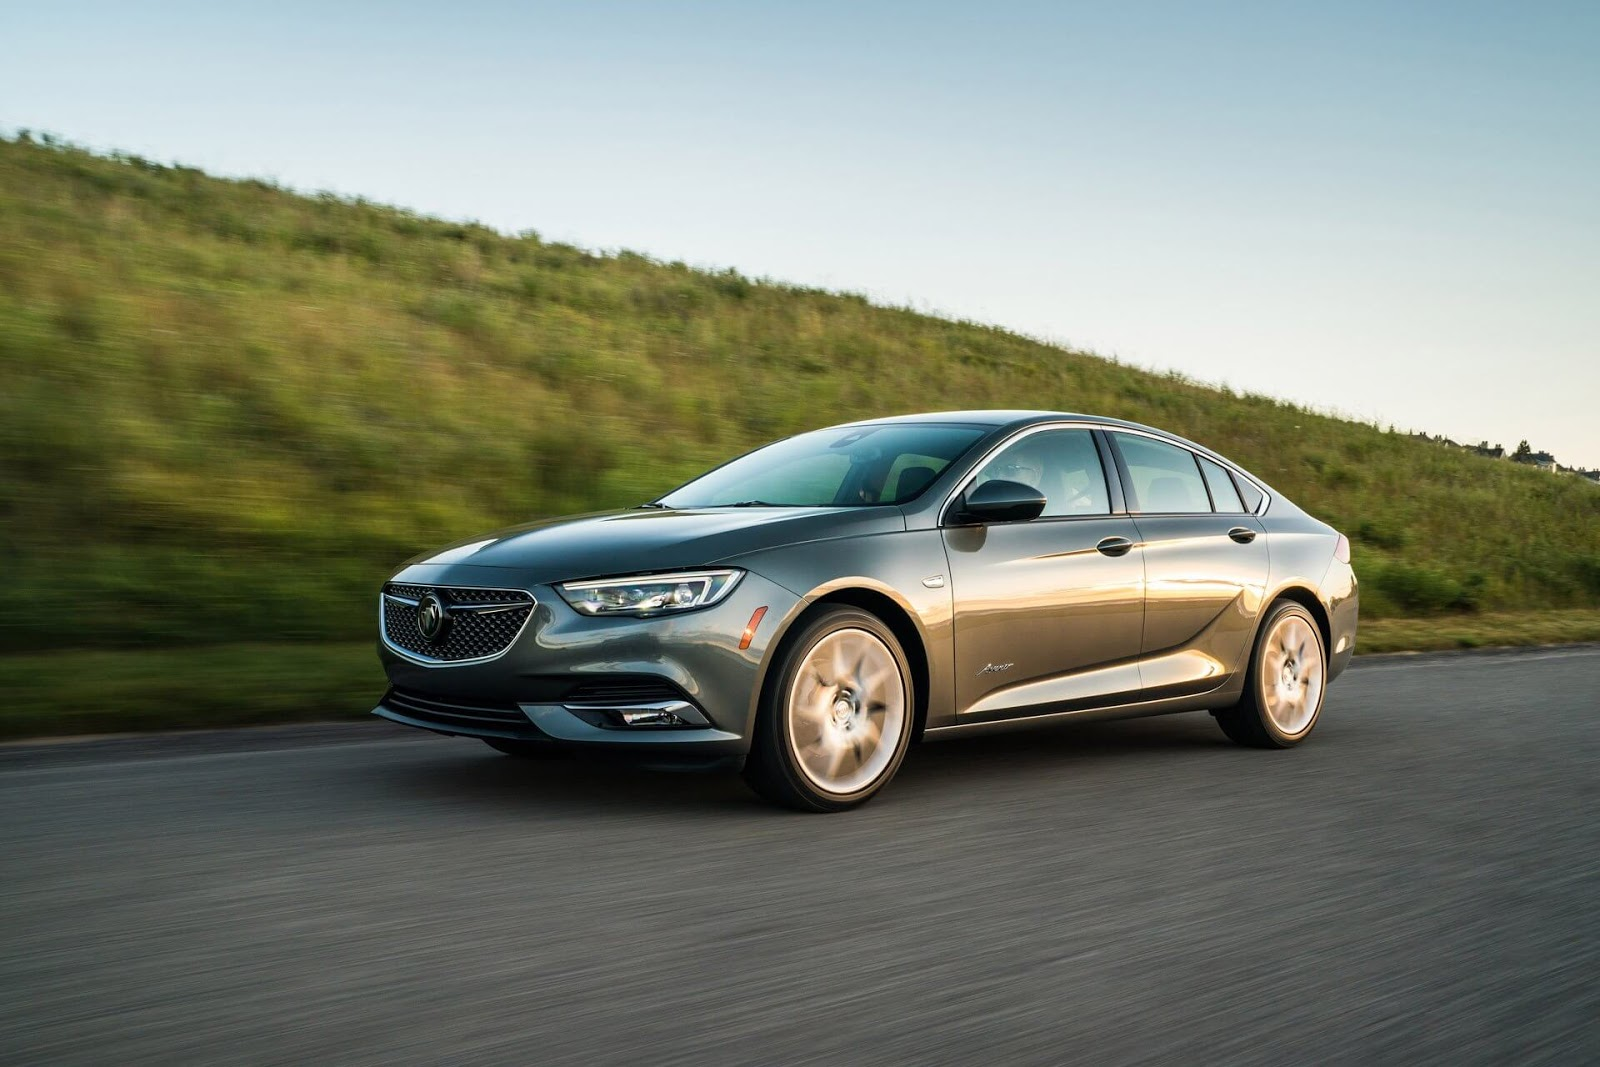 Buick Regal Avenir 2019 Comes In At A handsomely $36,195